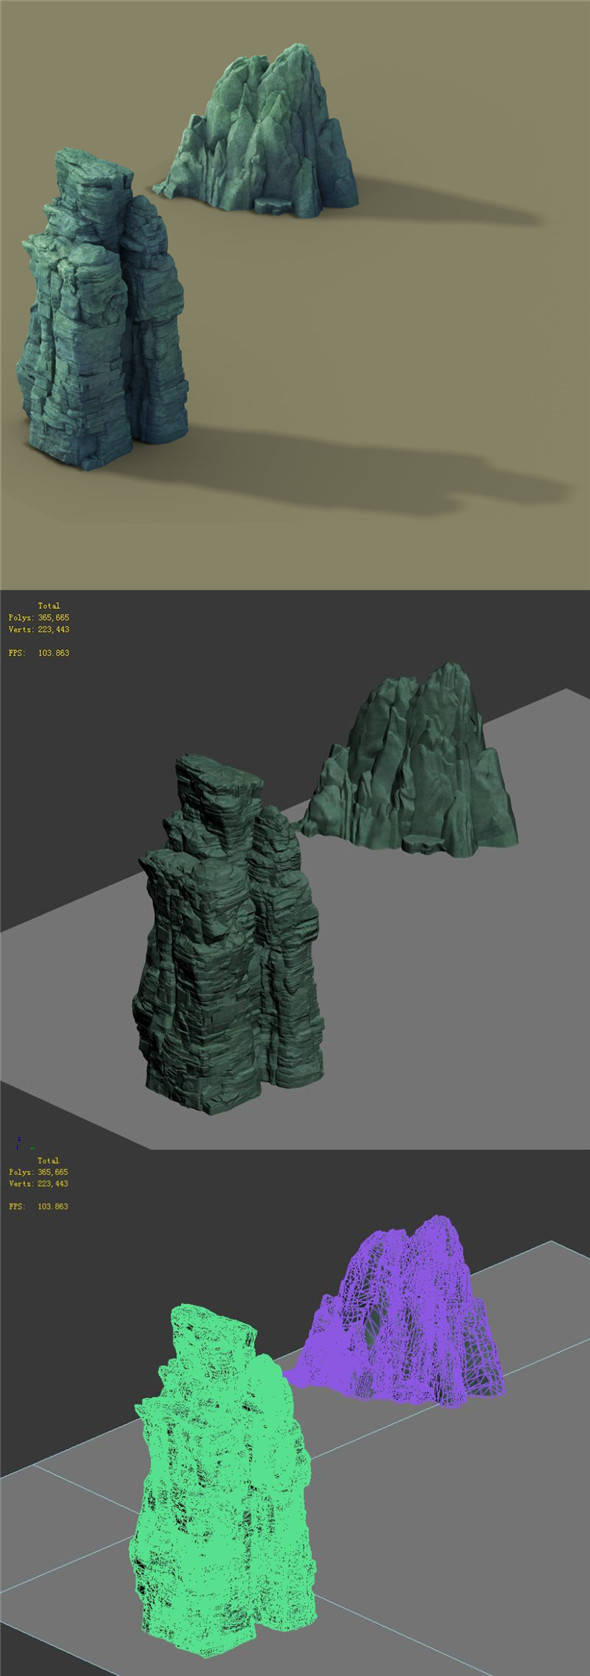 Terrain - Stone 02 - 3DOcean Item for Sale